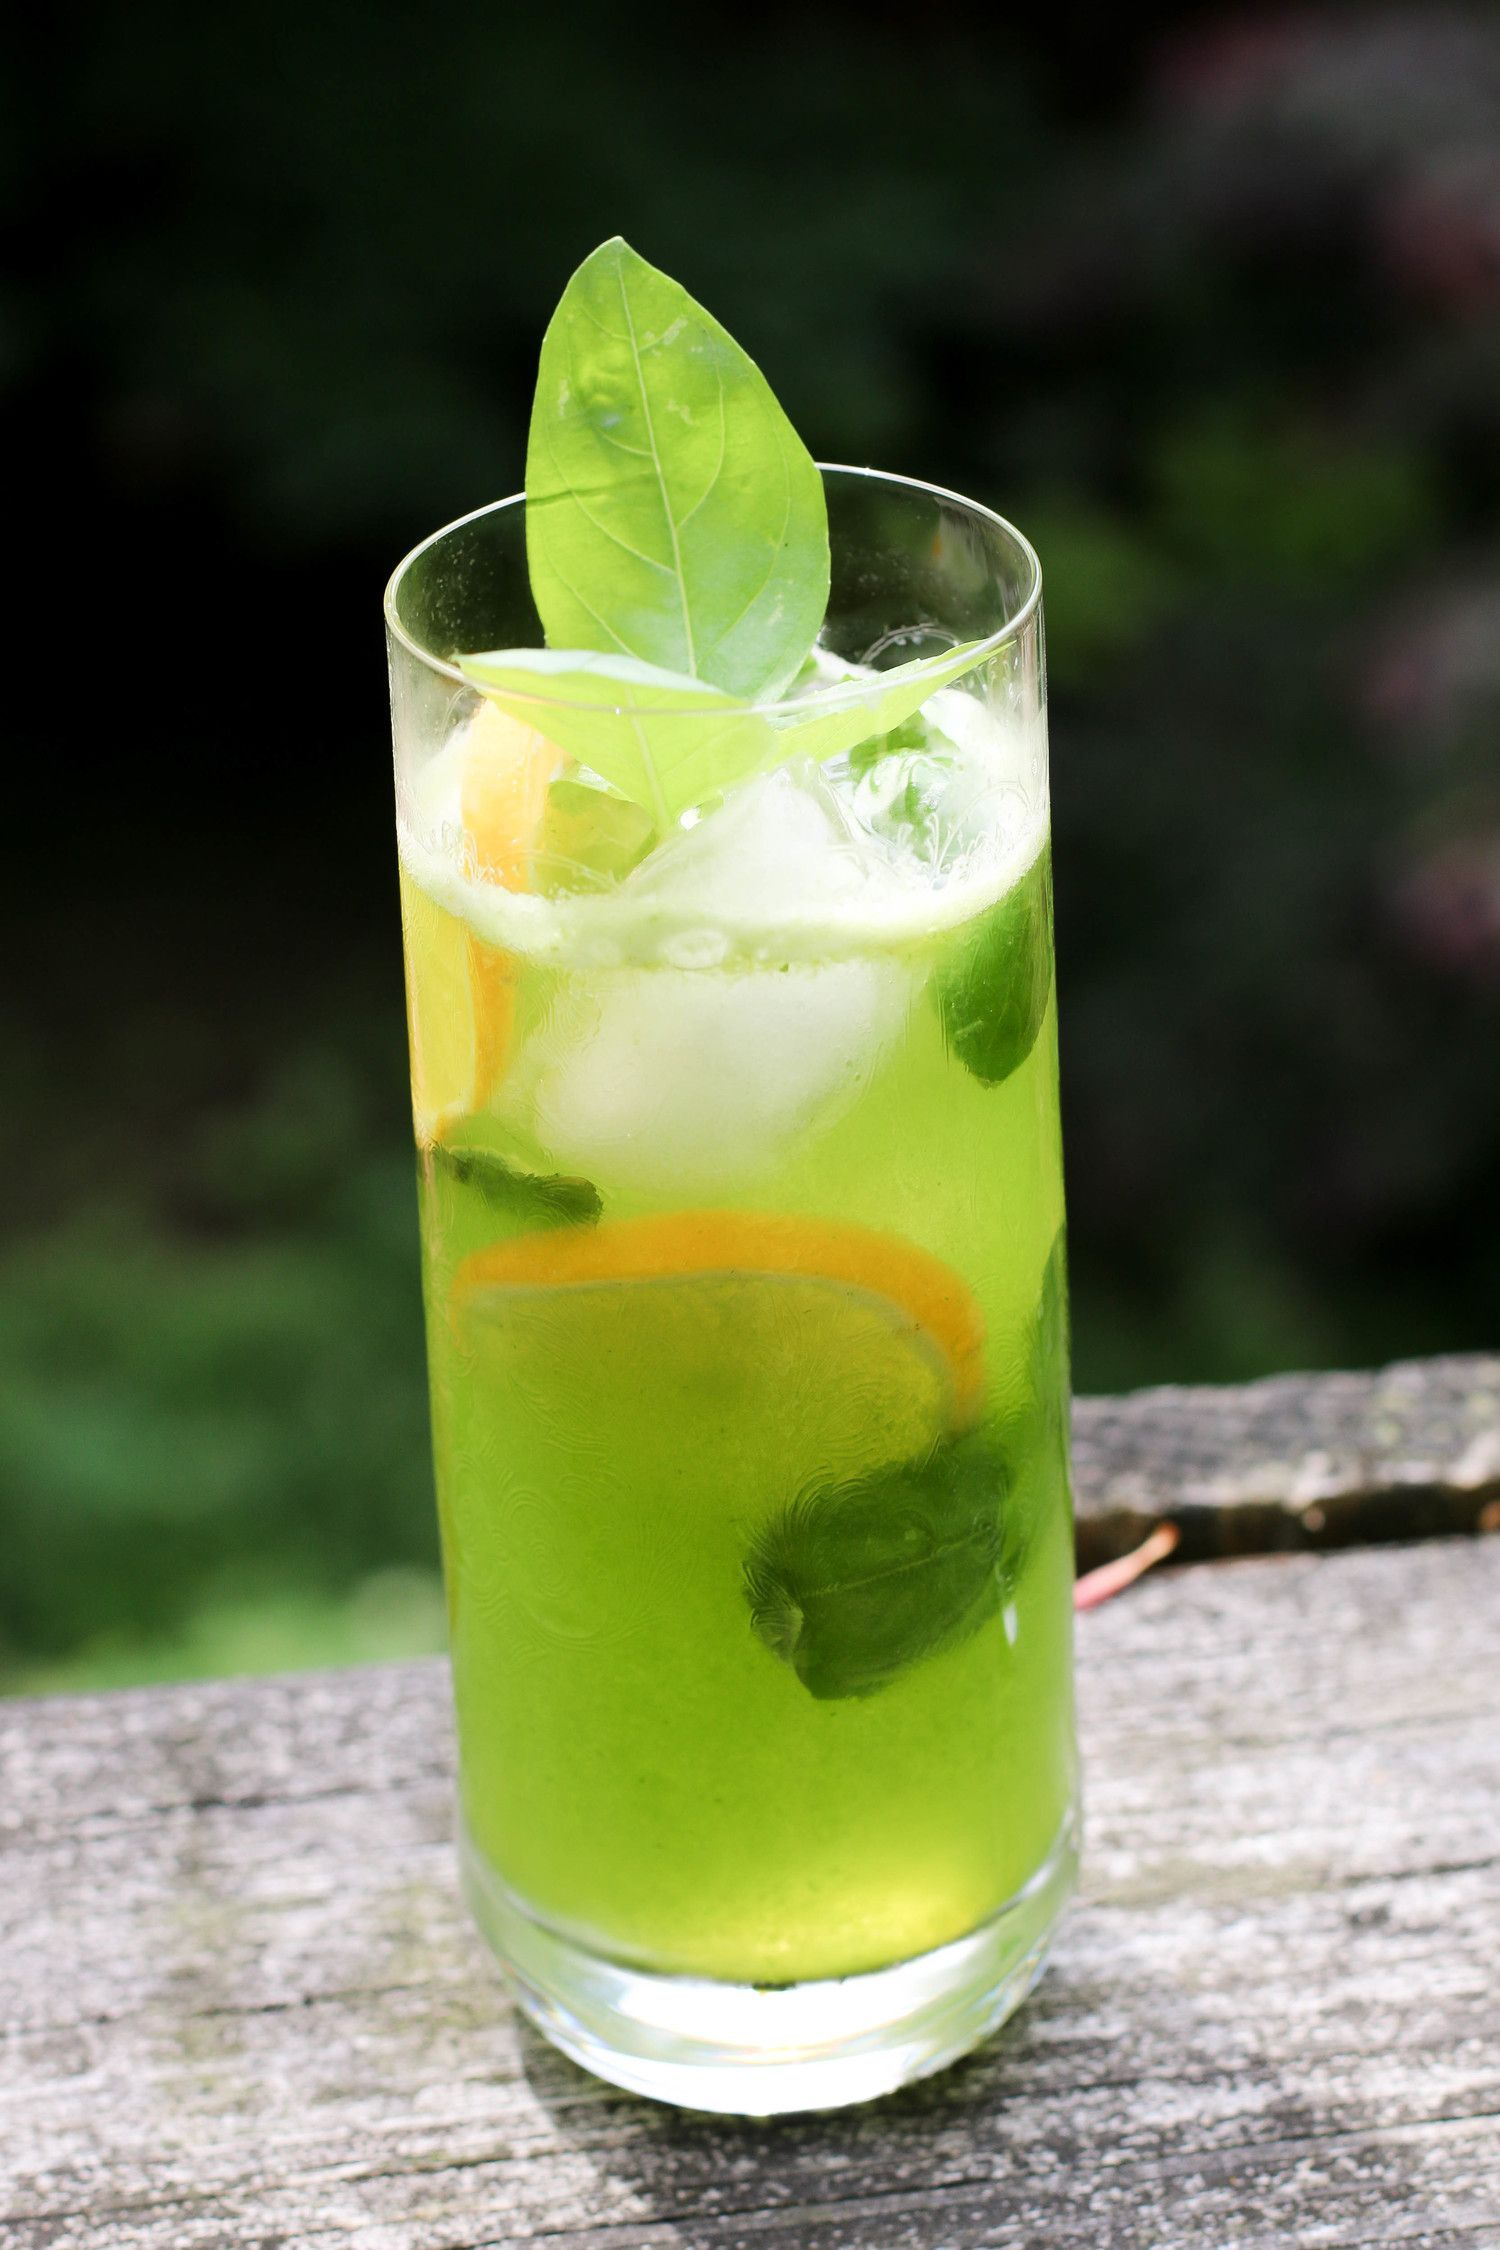 I have been making basil lemonade for years now. It's a sweet, almost grassy-flavored lemonade that is by far my favorite summer drink. This drink melds the aromatic qualities of sweet basil with notes of mint, cinnamon and anise and the lovely tart taste of fresh lemon juice. Yield:Serves 4 Ingredients: 1/2 cup basil leaves, … #flavoredlemonade I have been making basil lemonade for years now. It's a sweet, almost grassy-flavored lemonade that is by far my favorite summer drink. This dri #flavoredlemonade